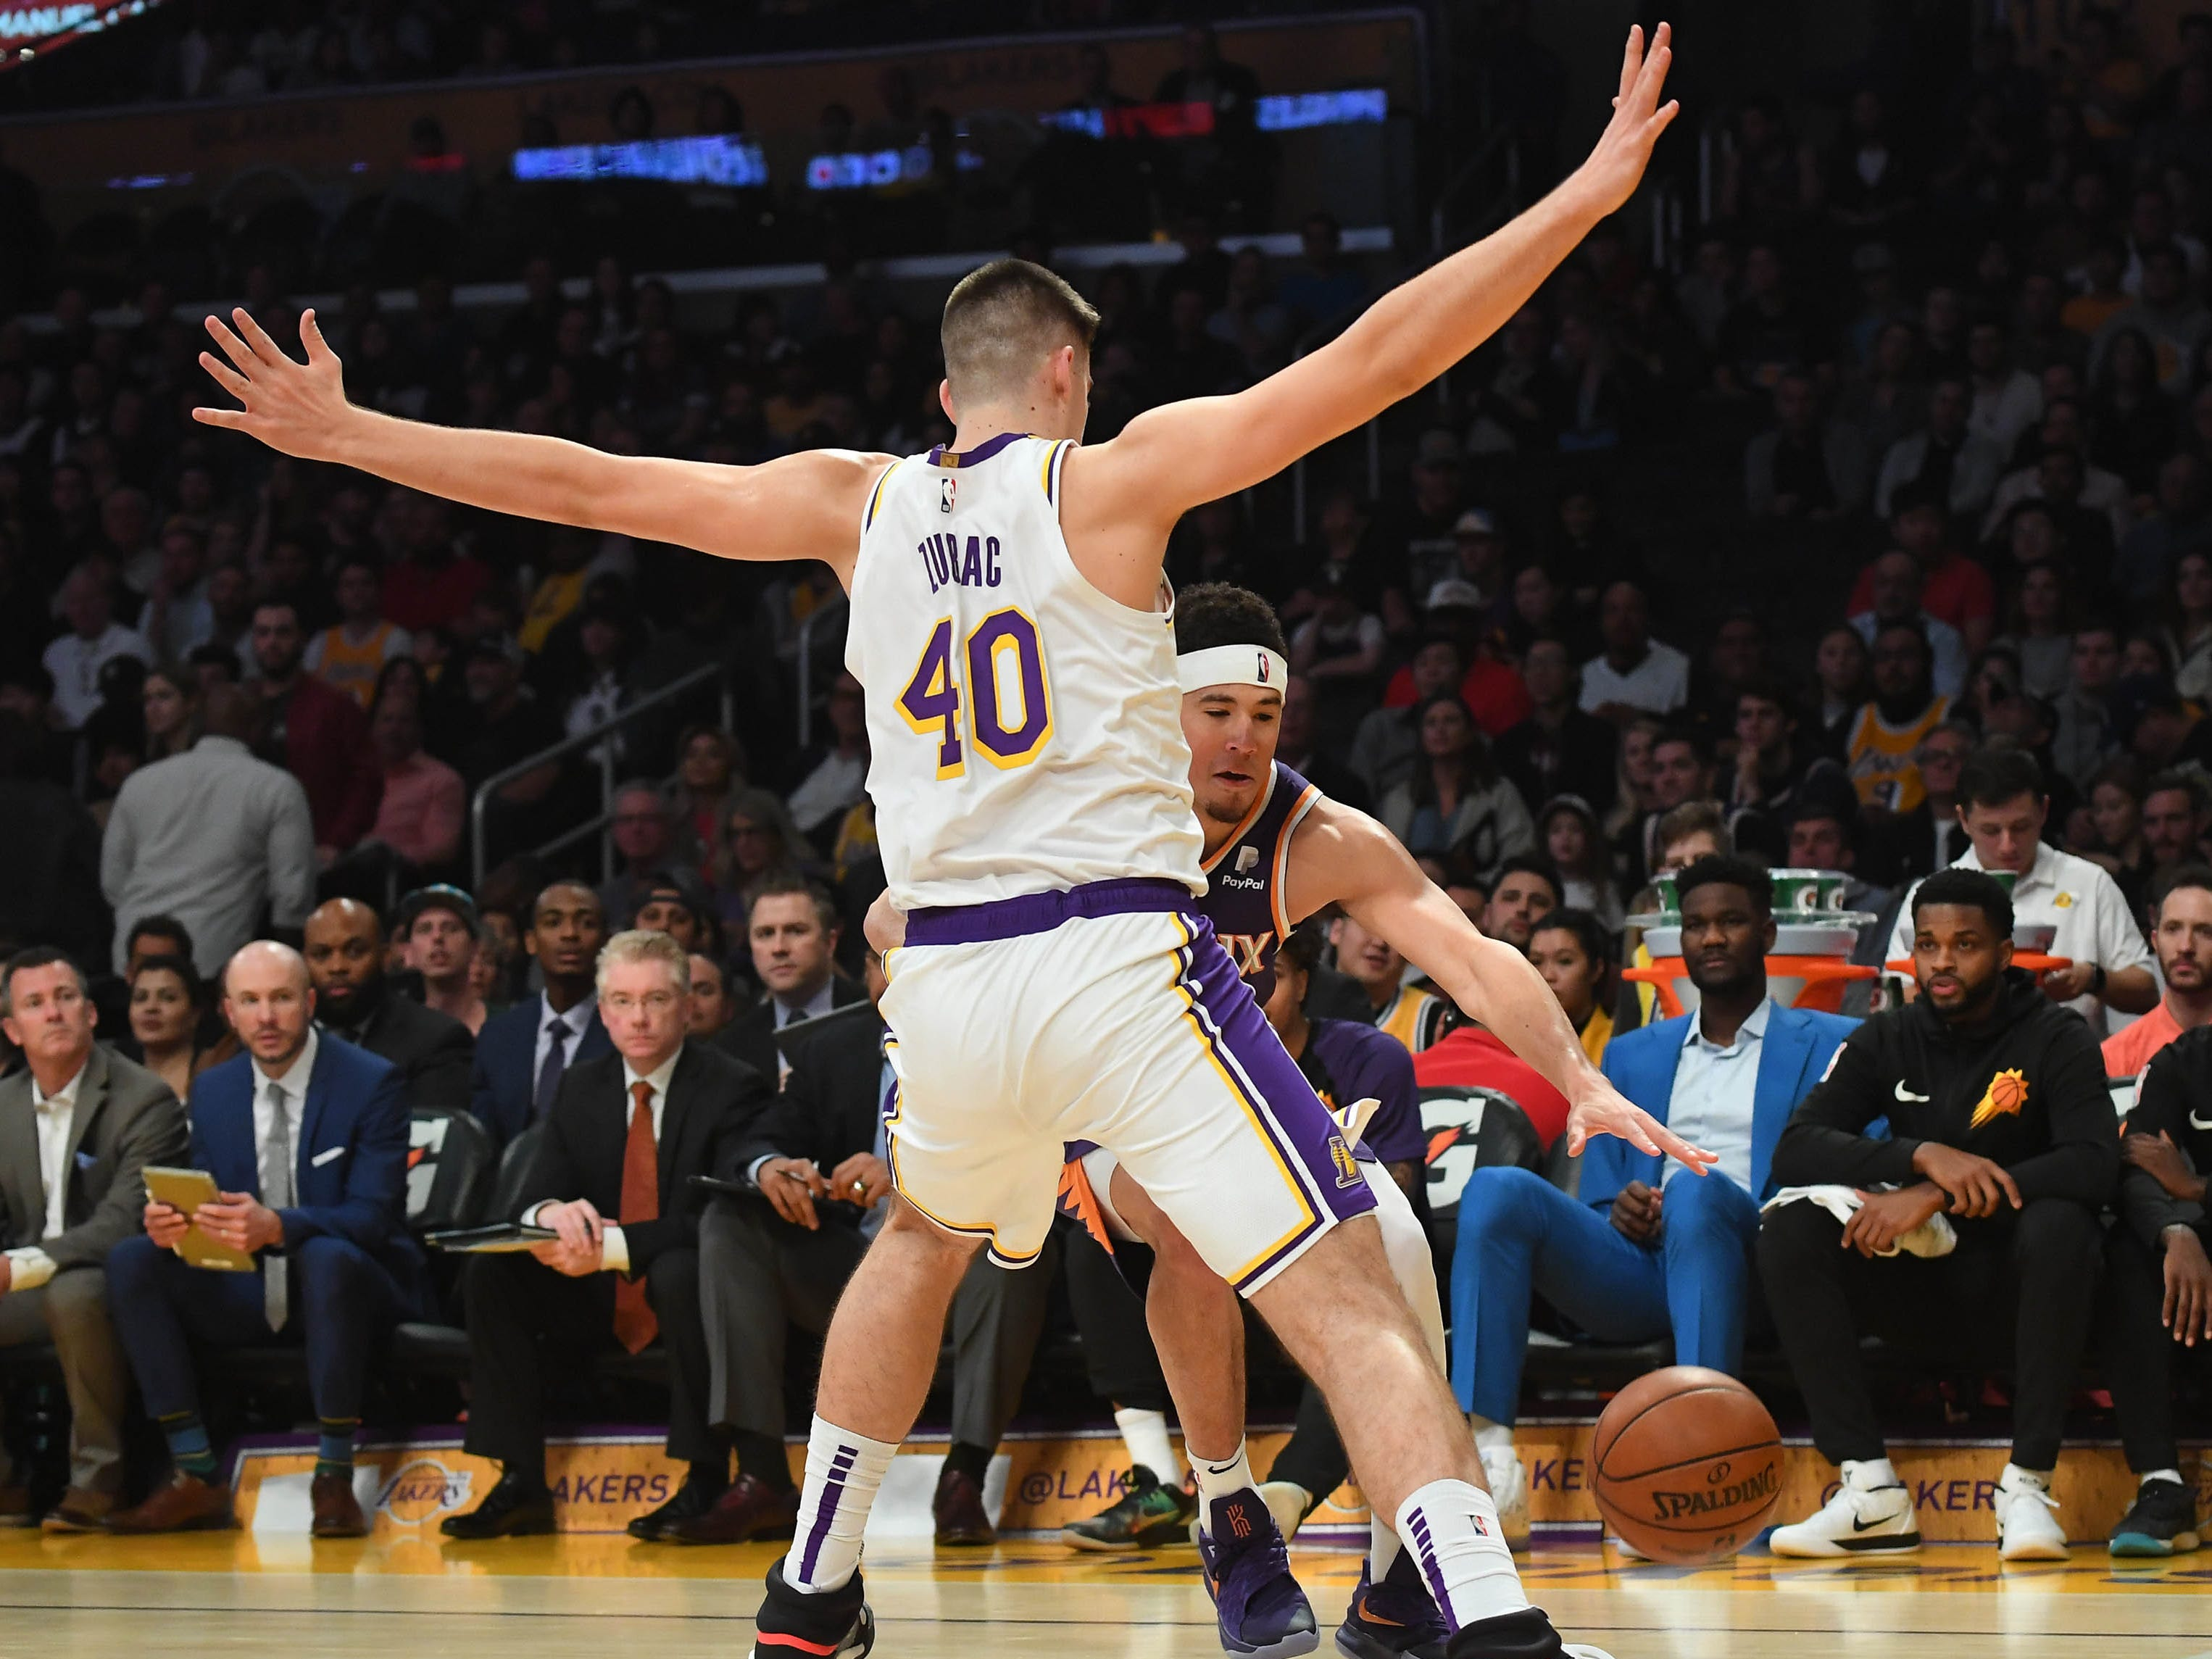 Jan 27, 2019; Los Angeles, CA, USA; Los Angeles Lakers center Ivica Zubac (40) guards Phoenix Suns guard Devin Booker (1) as drives to the basket in the first half of the game at Staples Center. Mandatory Credit: Jayne Kamin-Oncea-USA TODAY Sports